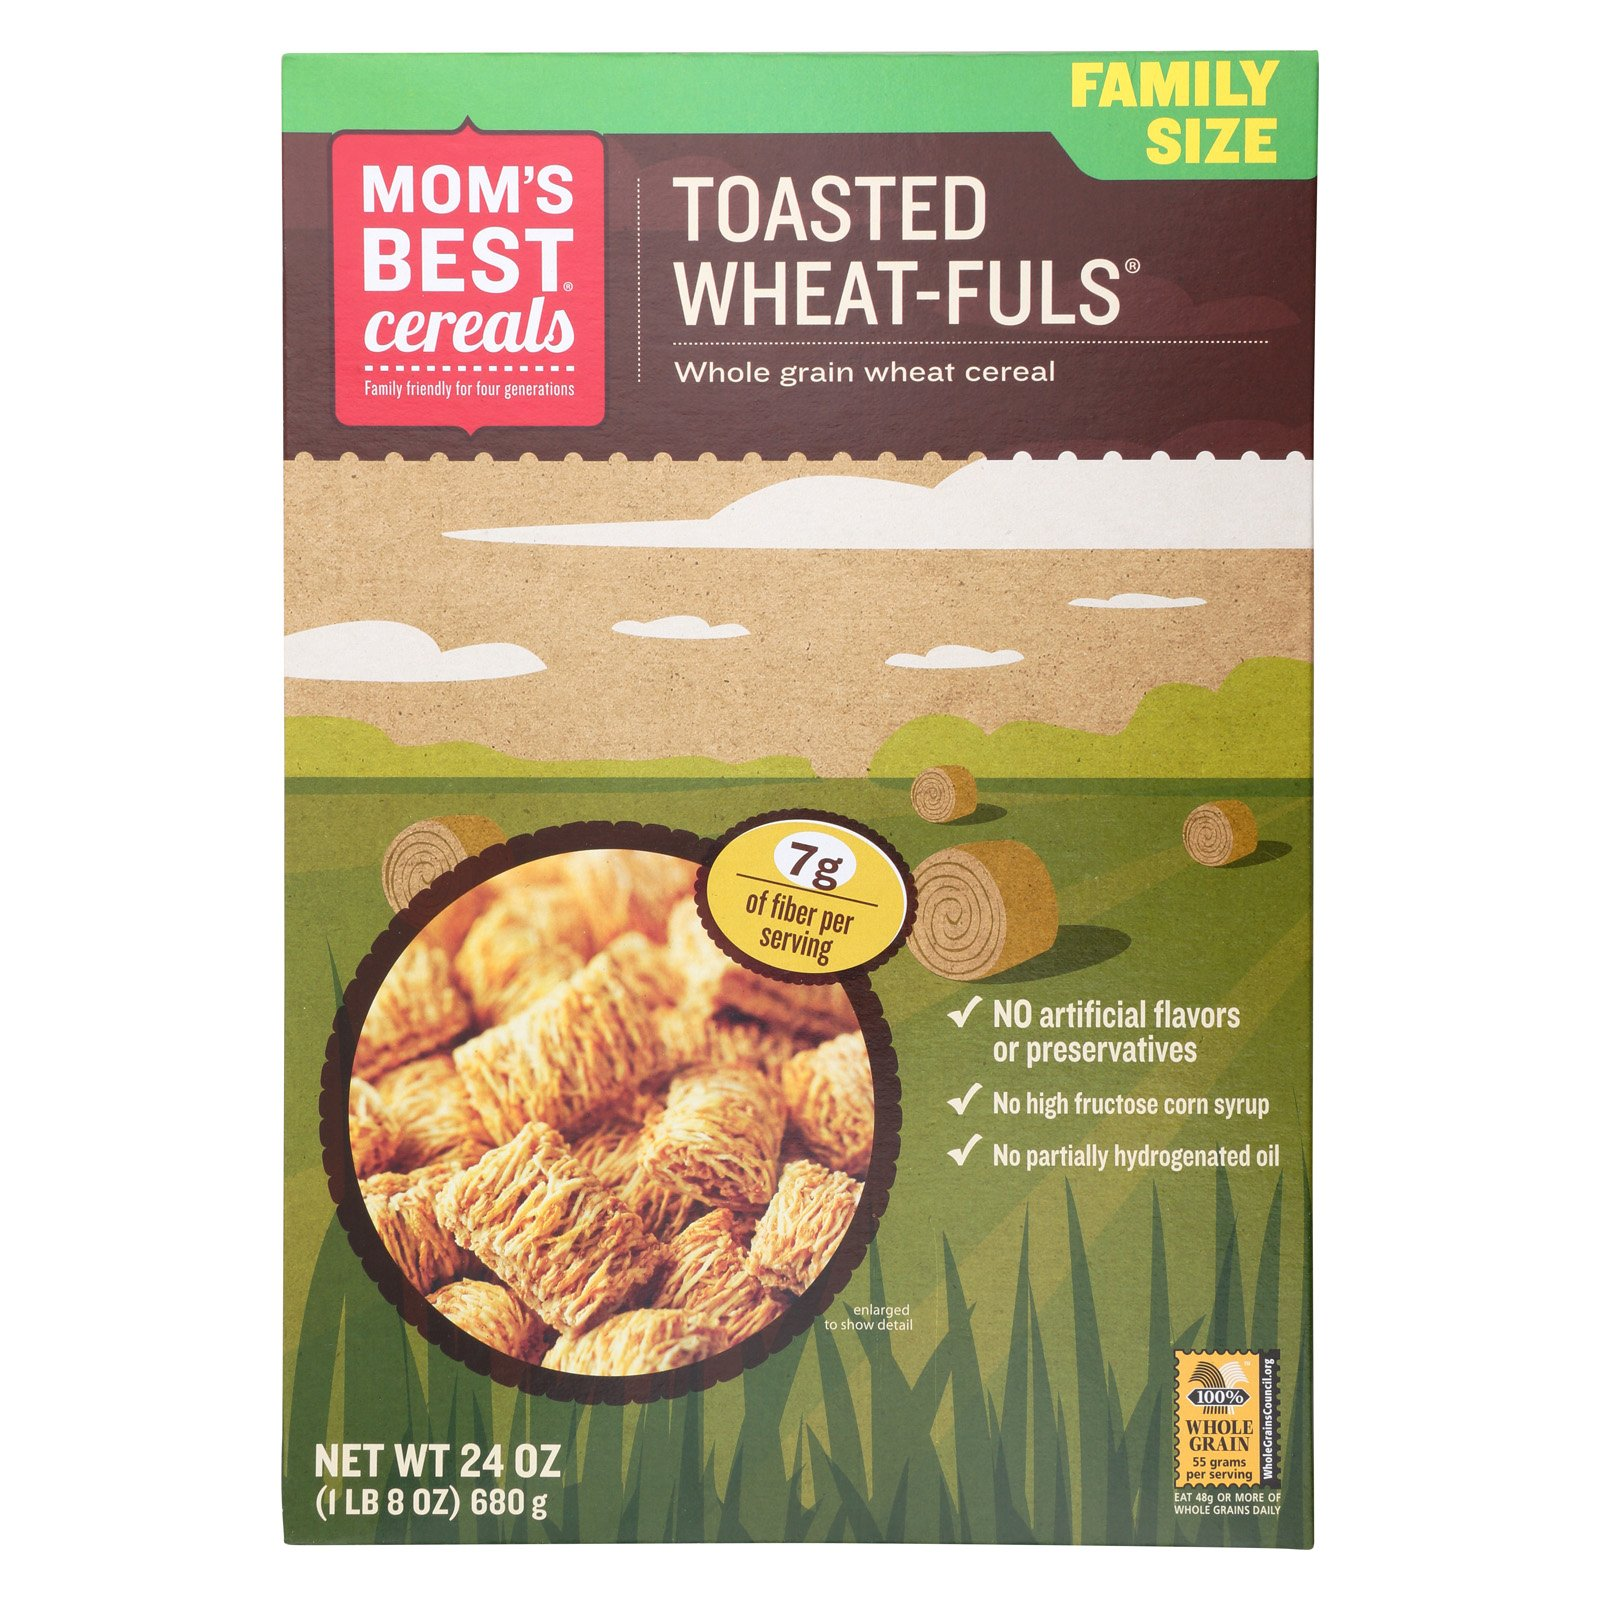 Moms Best Mom S Best Naturals Wheat Fuls Toasted Case Of 12 24 Oz